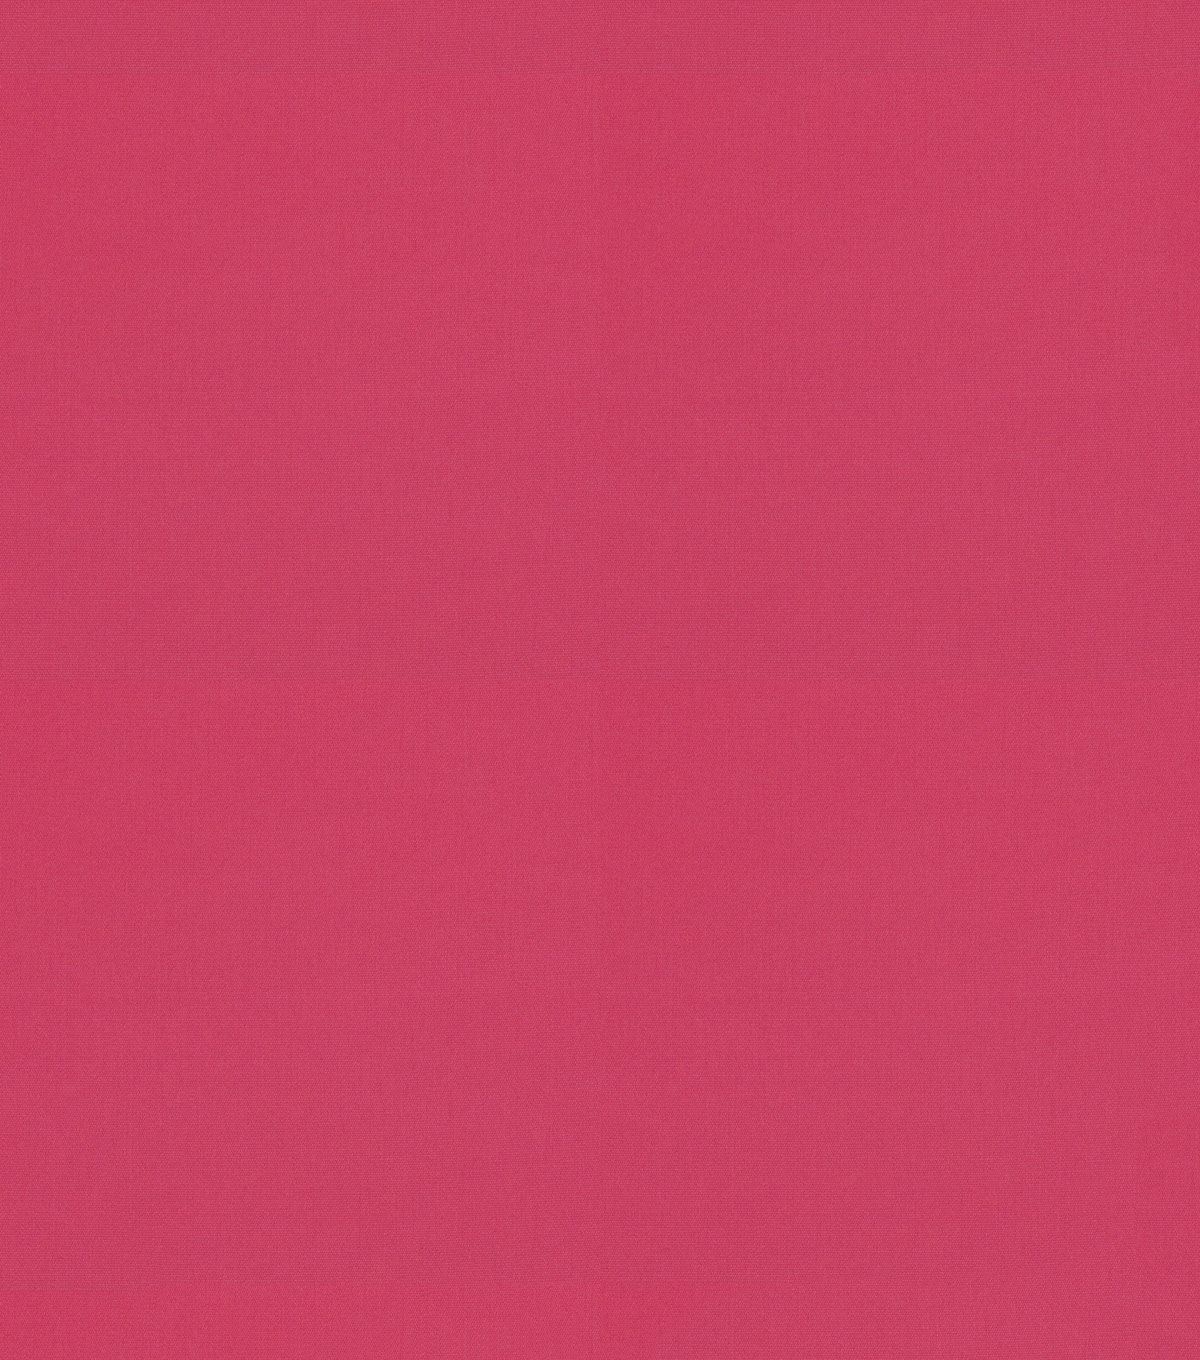 Sunbrella Solid Outdoor Fabric 54\u0022-Hot Pink